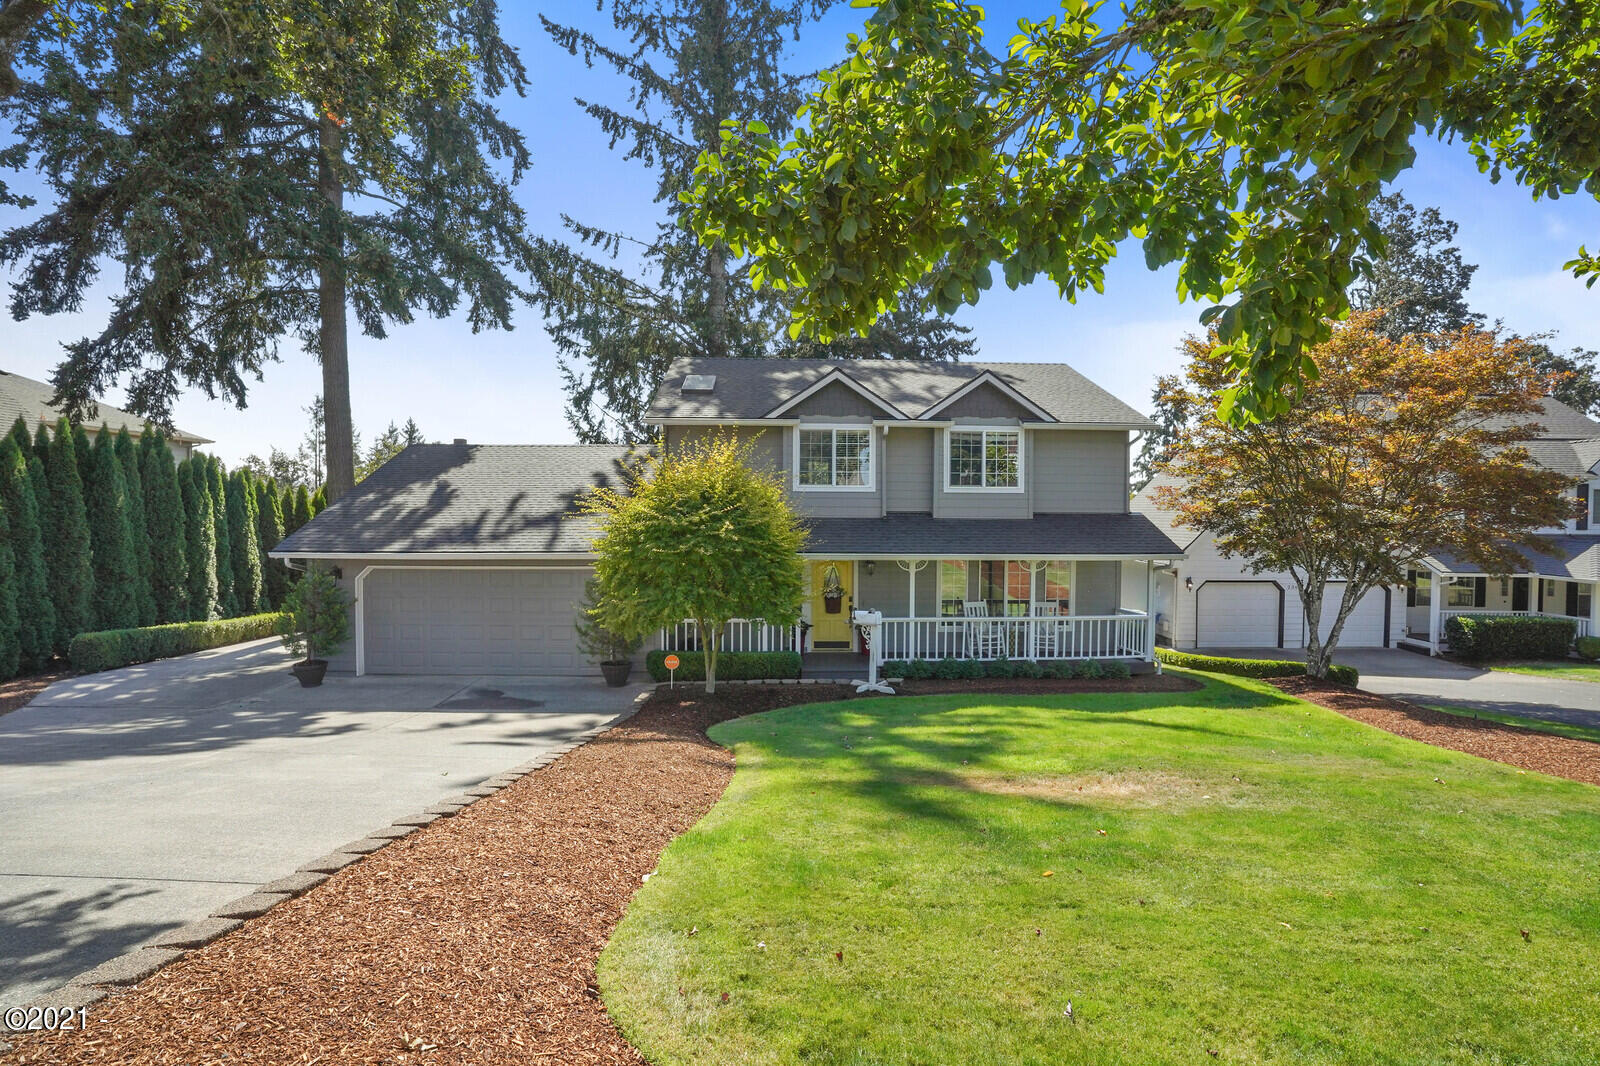 2370 E Pine St, Stayton, OR 97383 - front